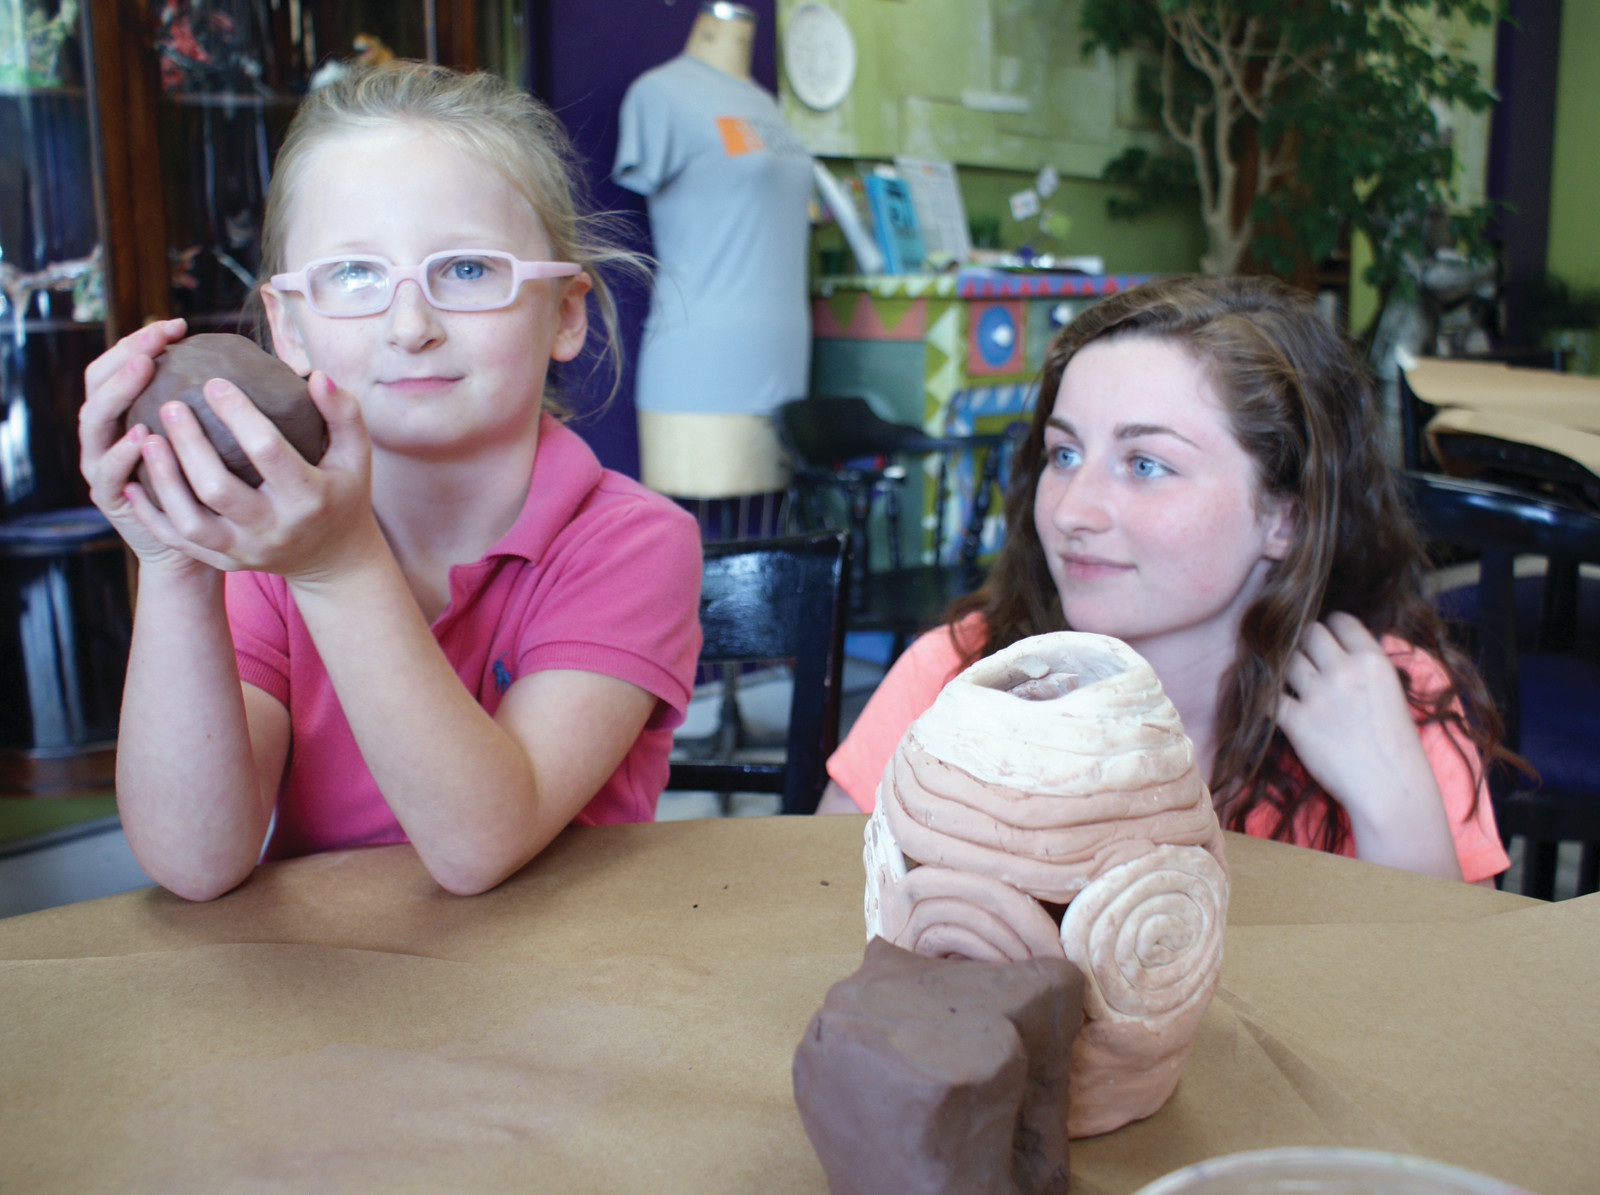 WITH GUIDANCE: Artists' Exchange instructor Sarah DeSimone looks on as Violet Umstadter, age 5, molds her clay at the most recent Craft Bash.